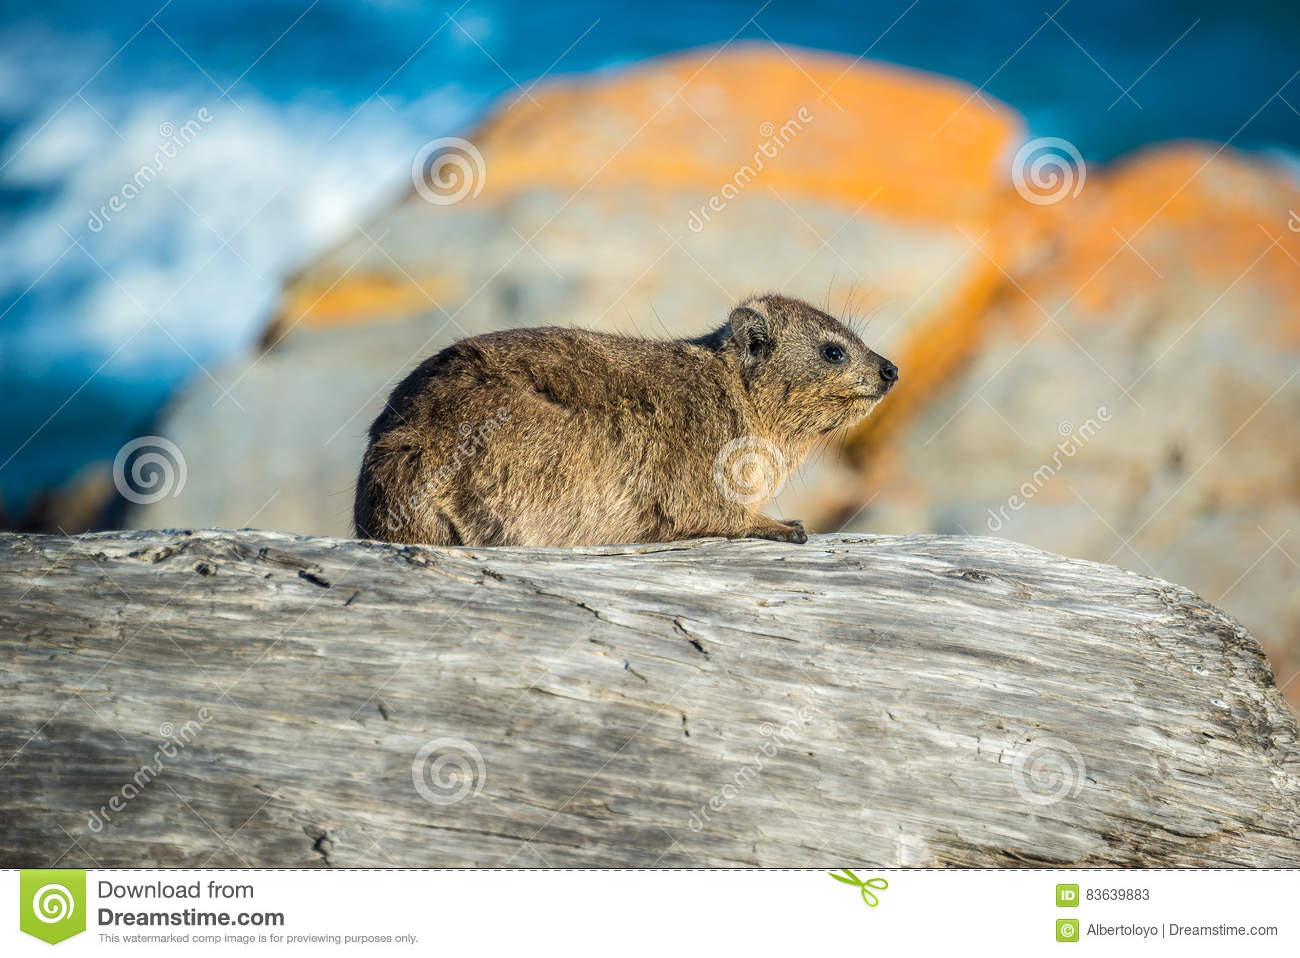 A Rock Hyrax Or Dassie In Tsitsikamma National Park, South Africa.